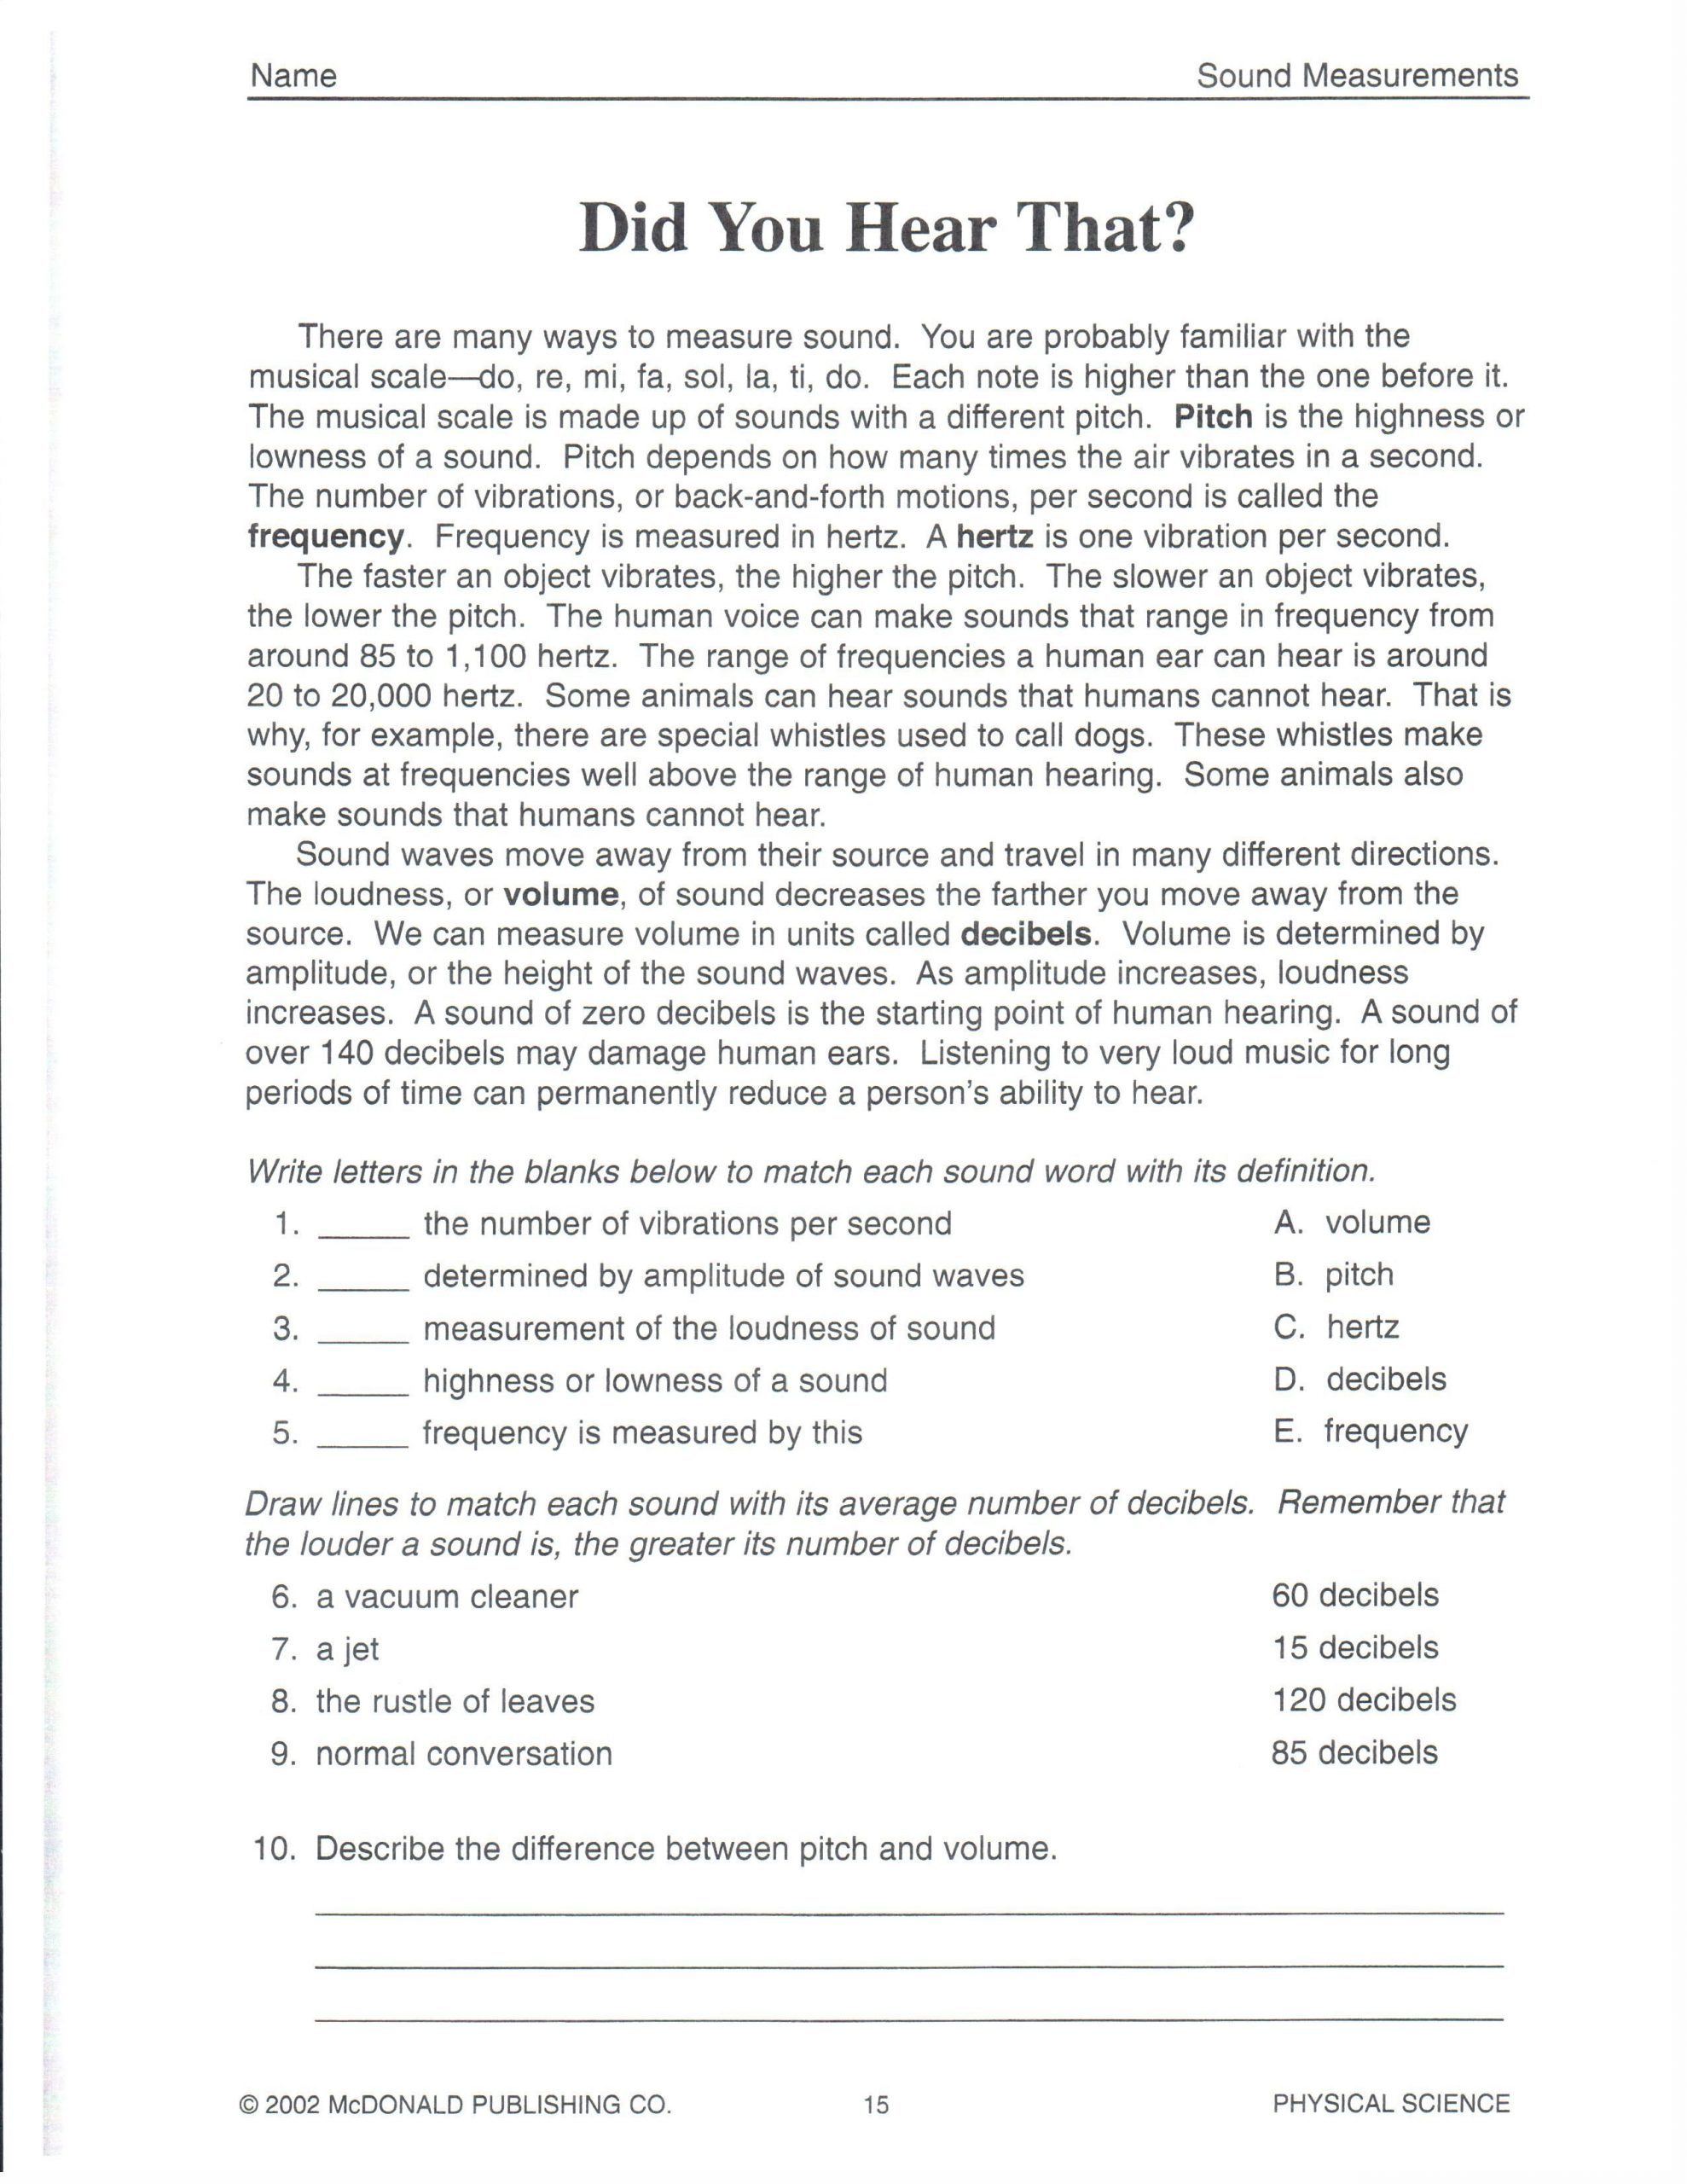 Free 7th Grade Science Worksheets Physical Science Did You Hear that 101roxm 2 550—3 300